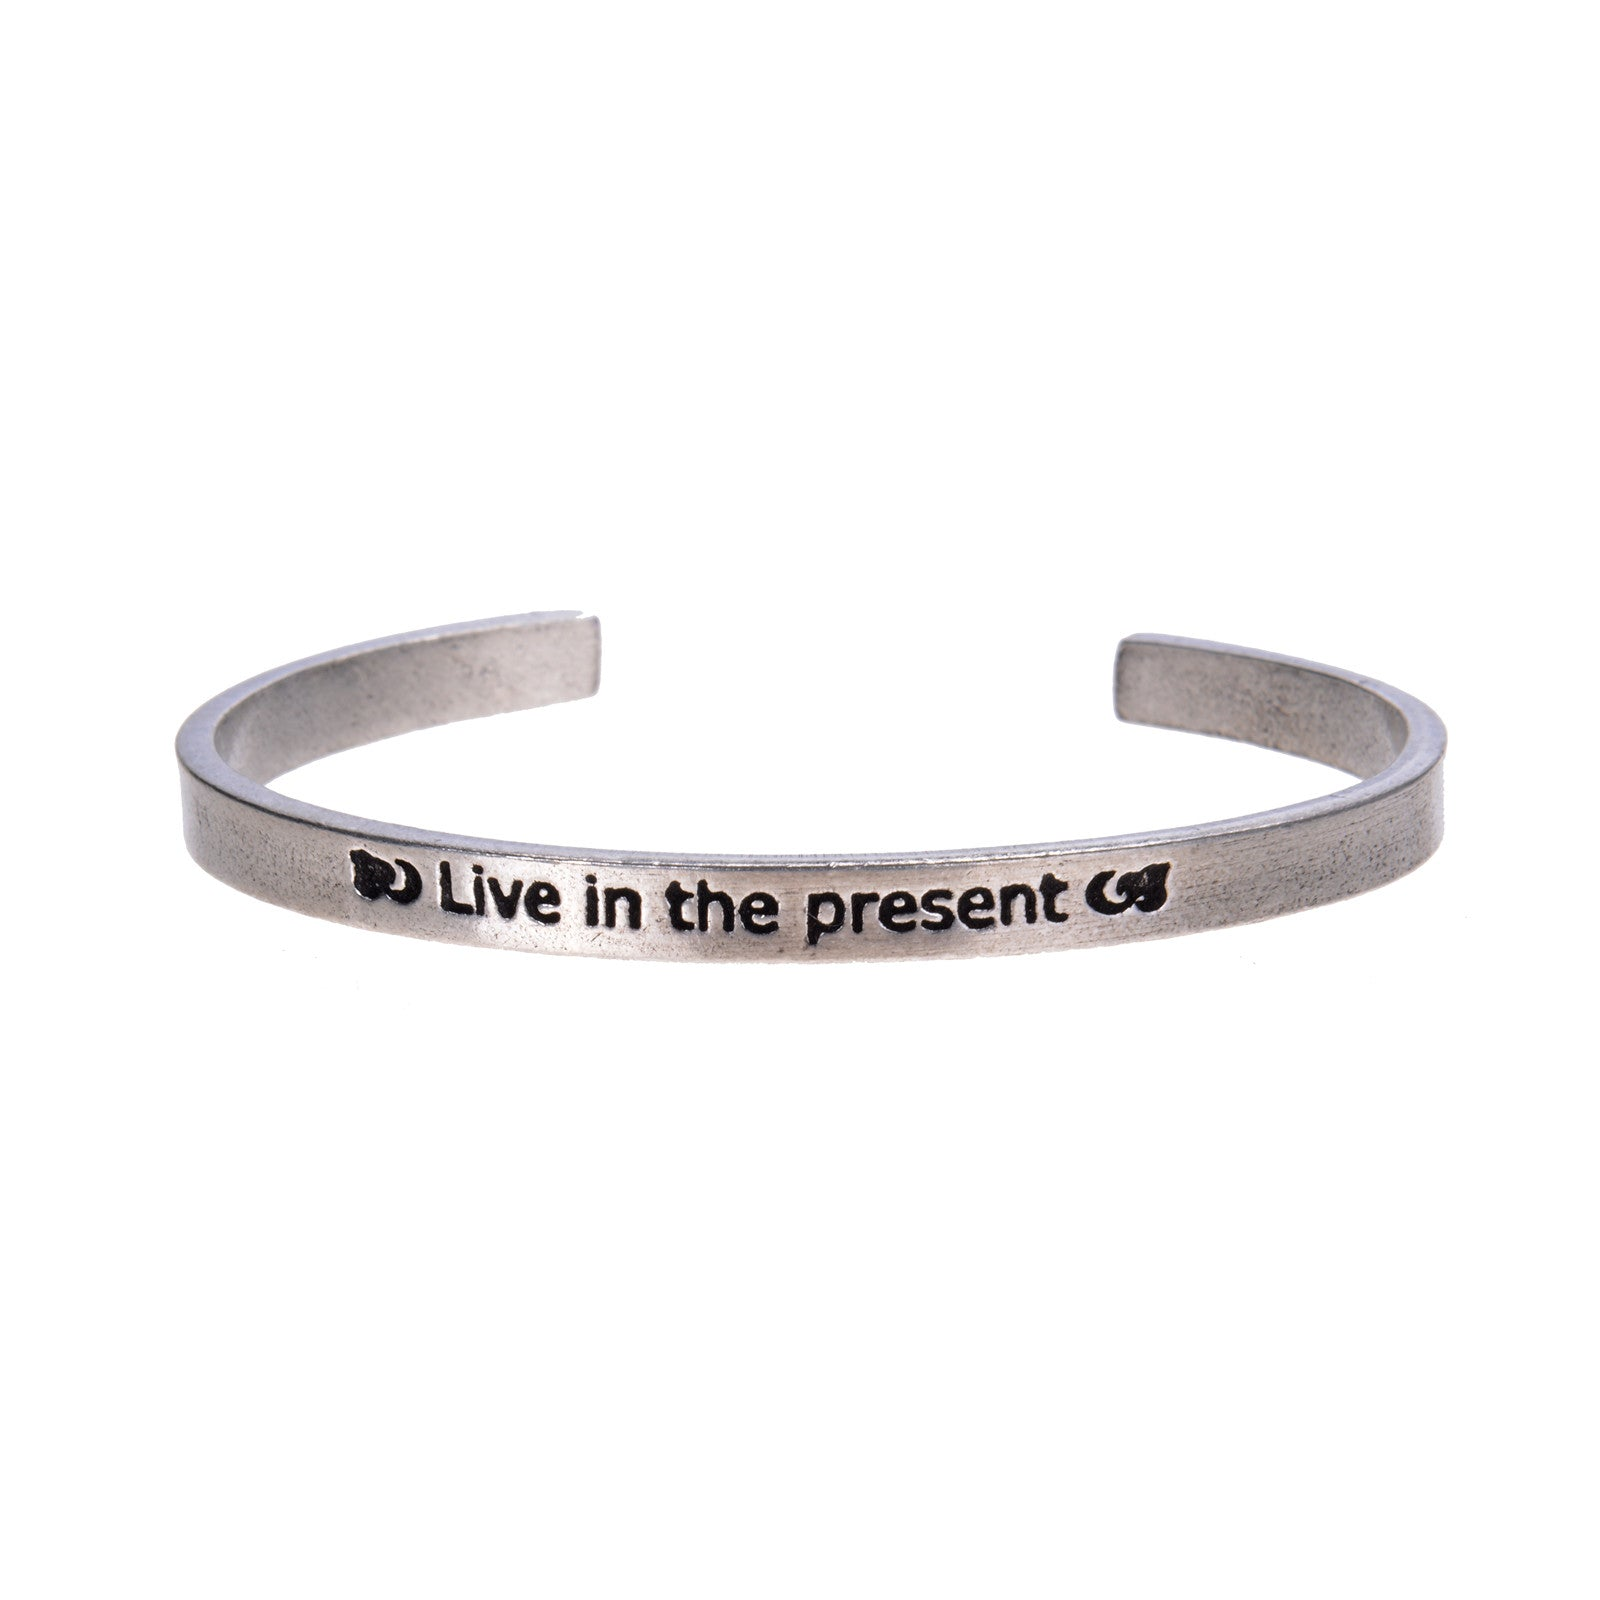 Live In The Present Quotable Cuff Bracelet - Whitney Howard Designs